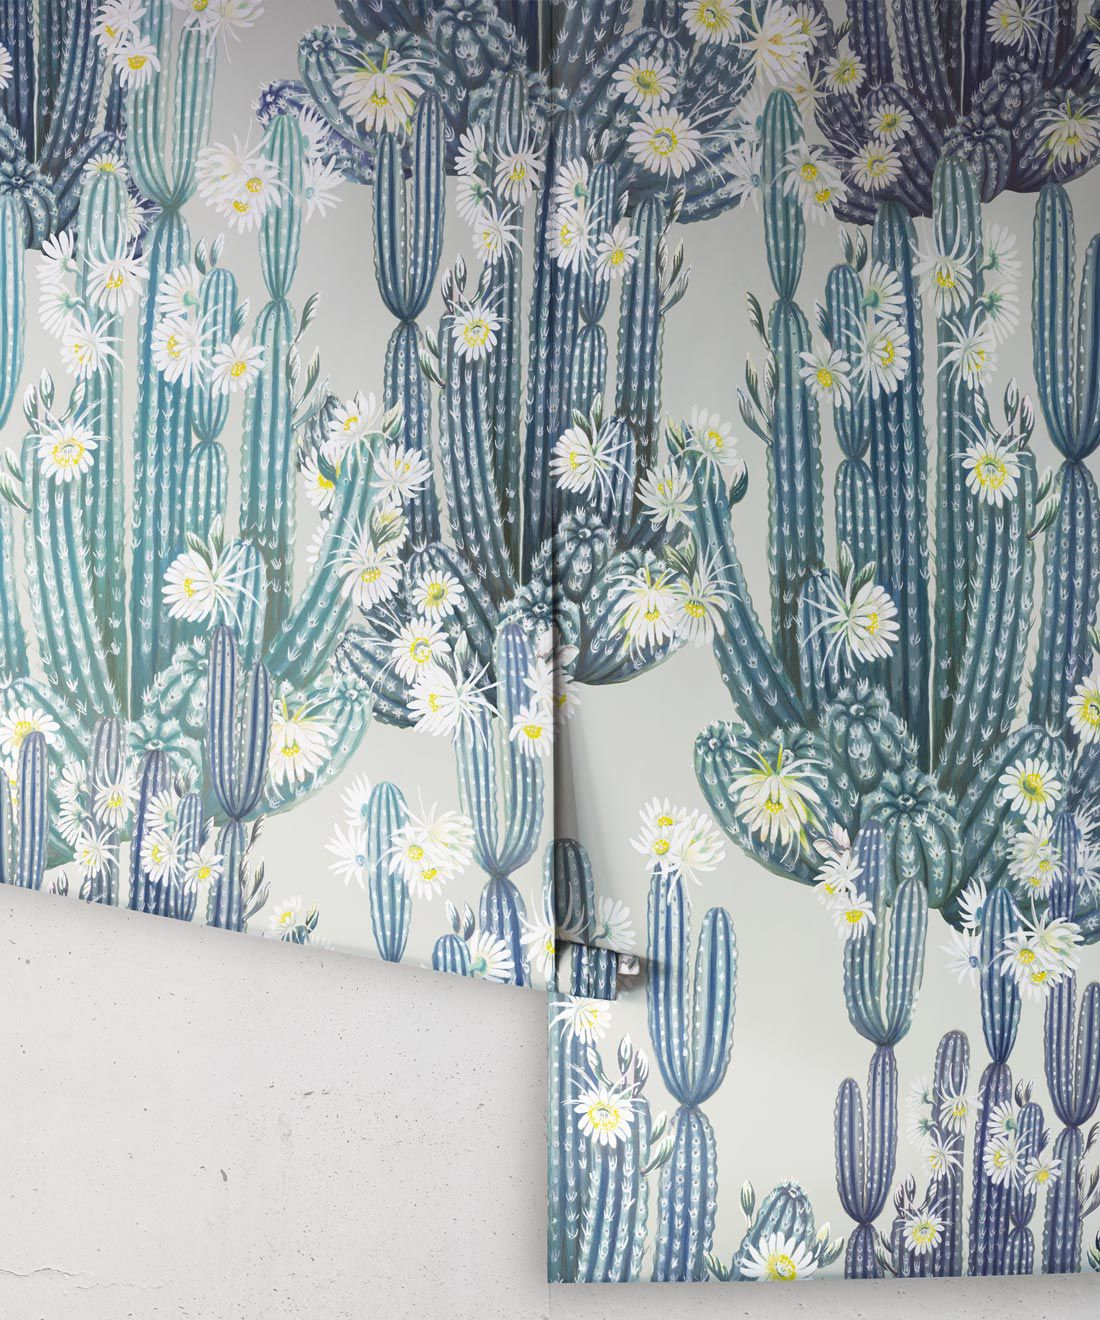 San Pedro Wallpaper Blue • Cactus Wallpaper • Succulents Wallpaper • Desert Wallpaper Rolls